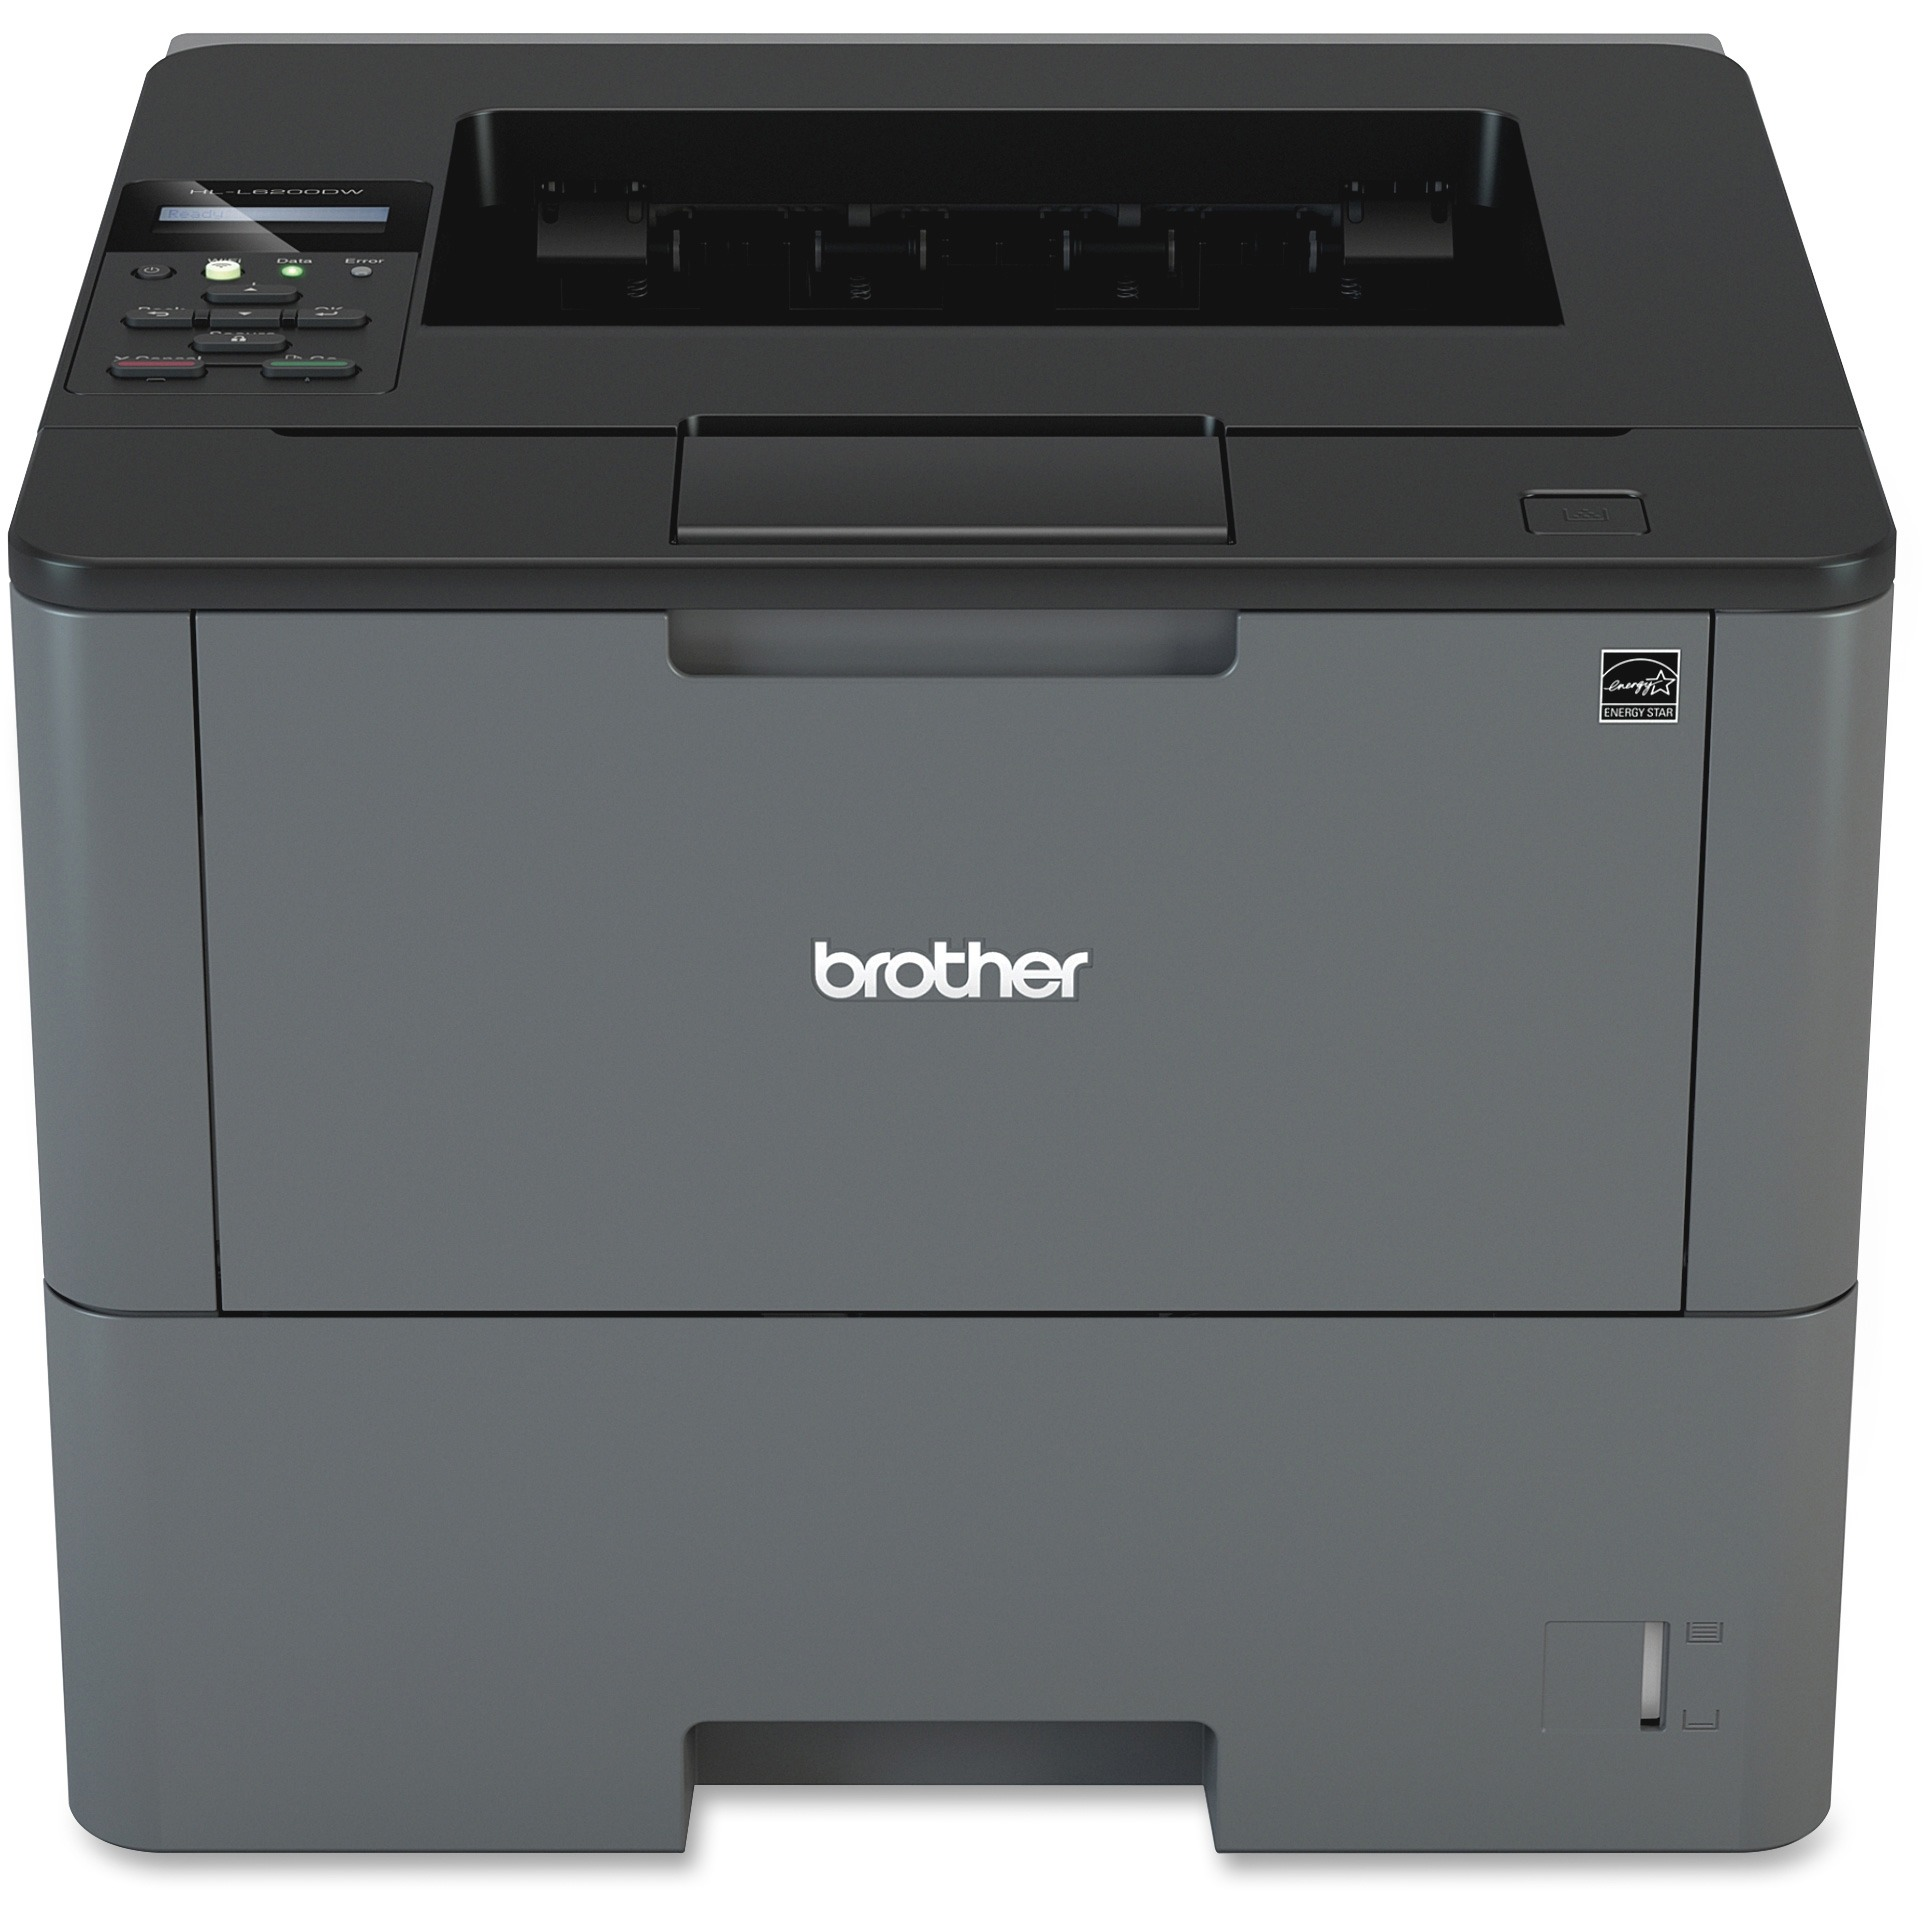 Brother HL-L6200DW Business Monochrome Wireless Laser Printer, Automatic Duplex Printing